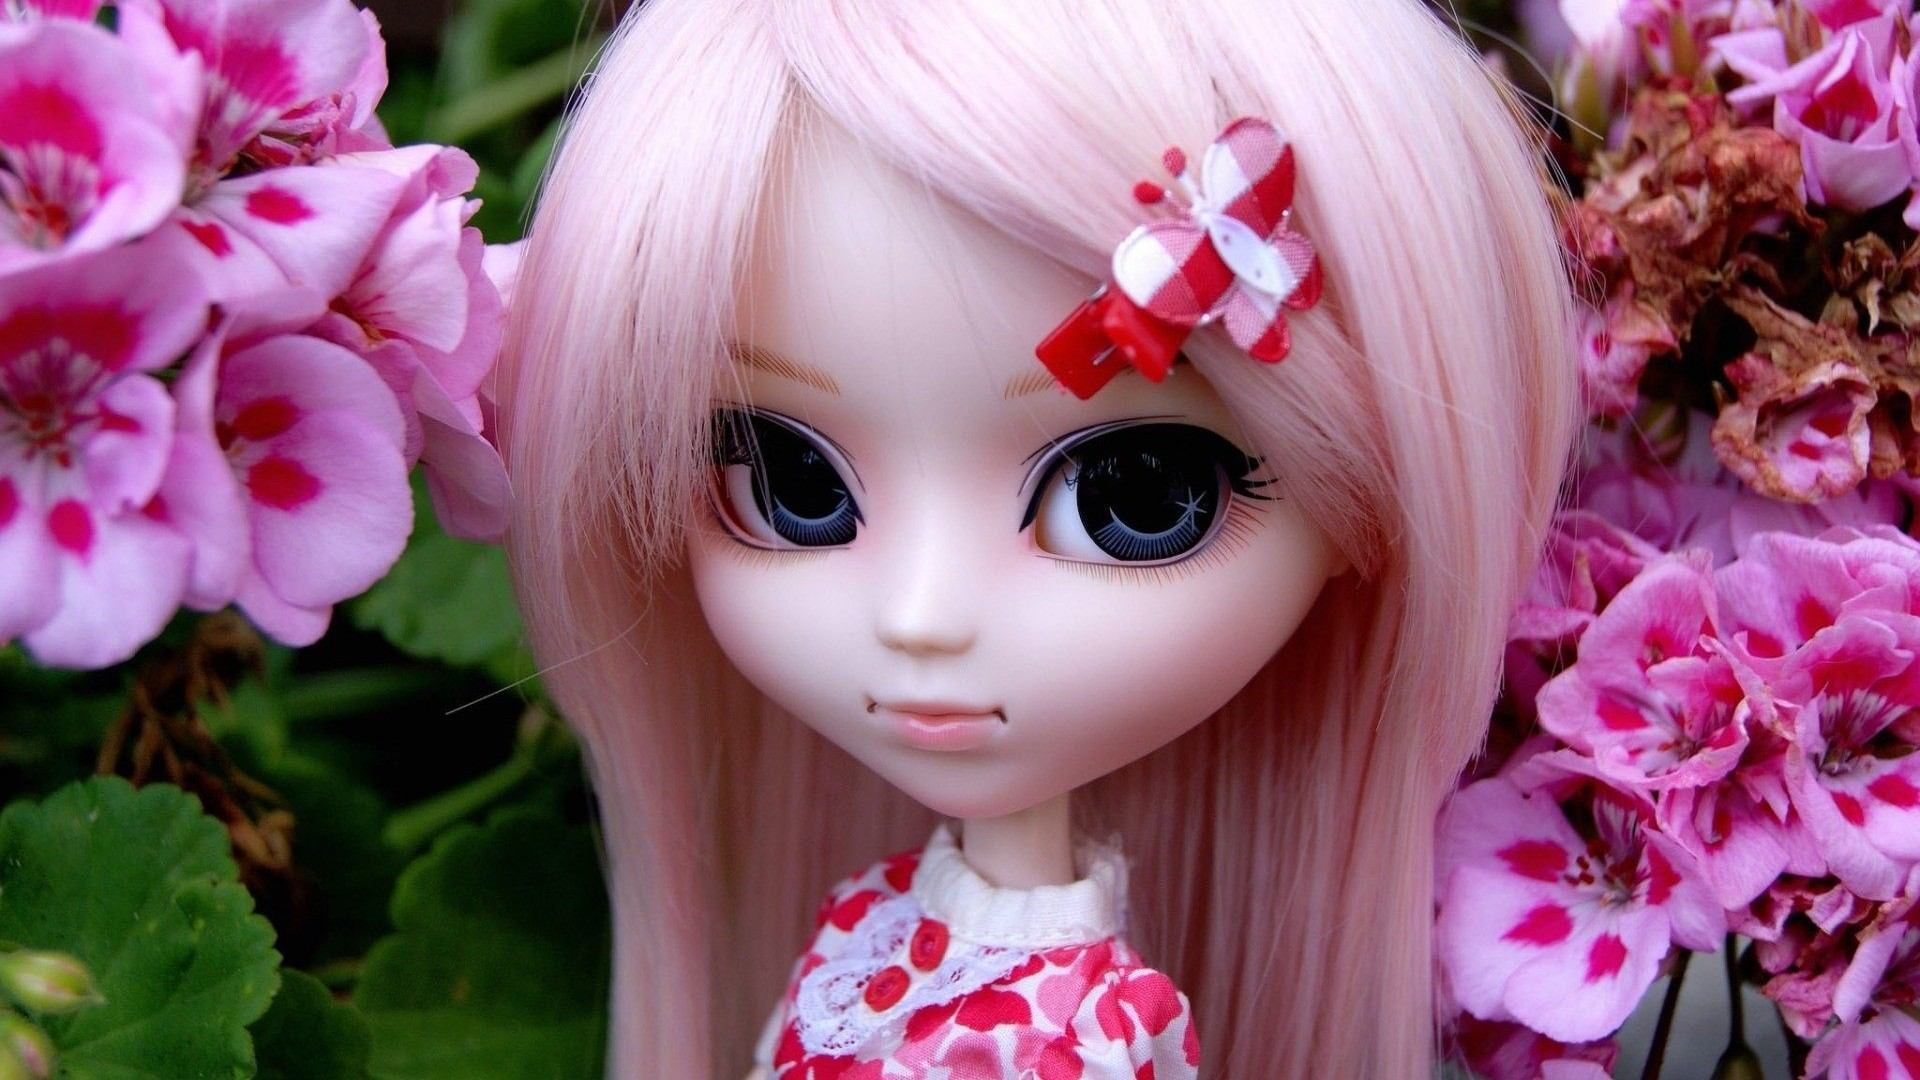 cute doll wallpaper ·①